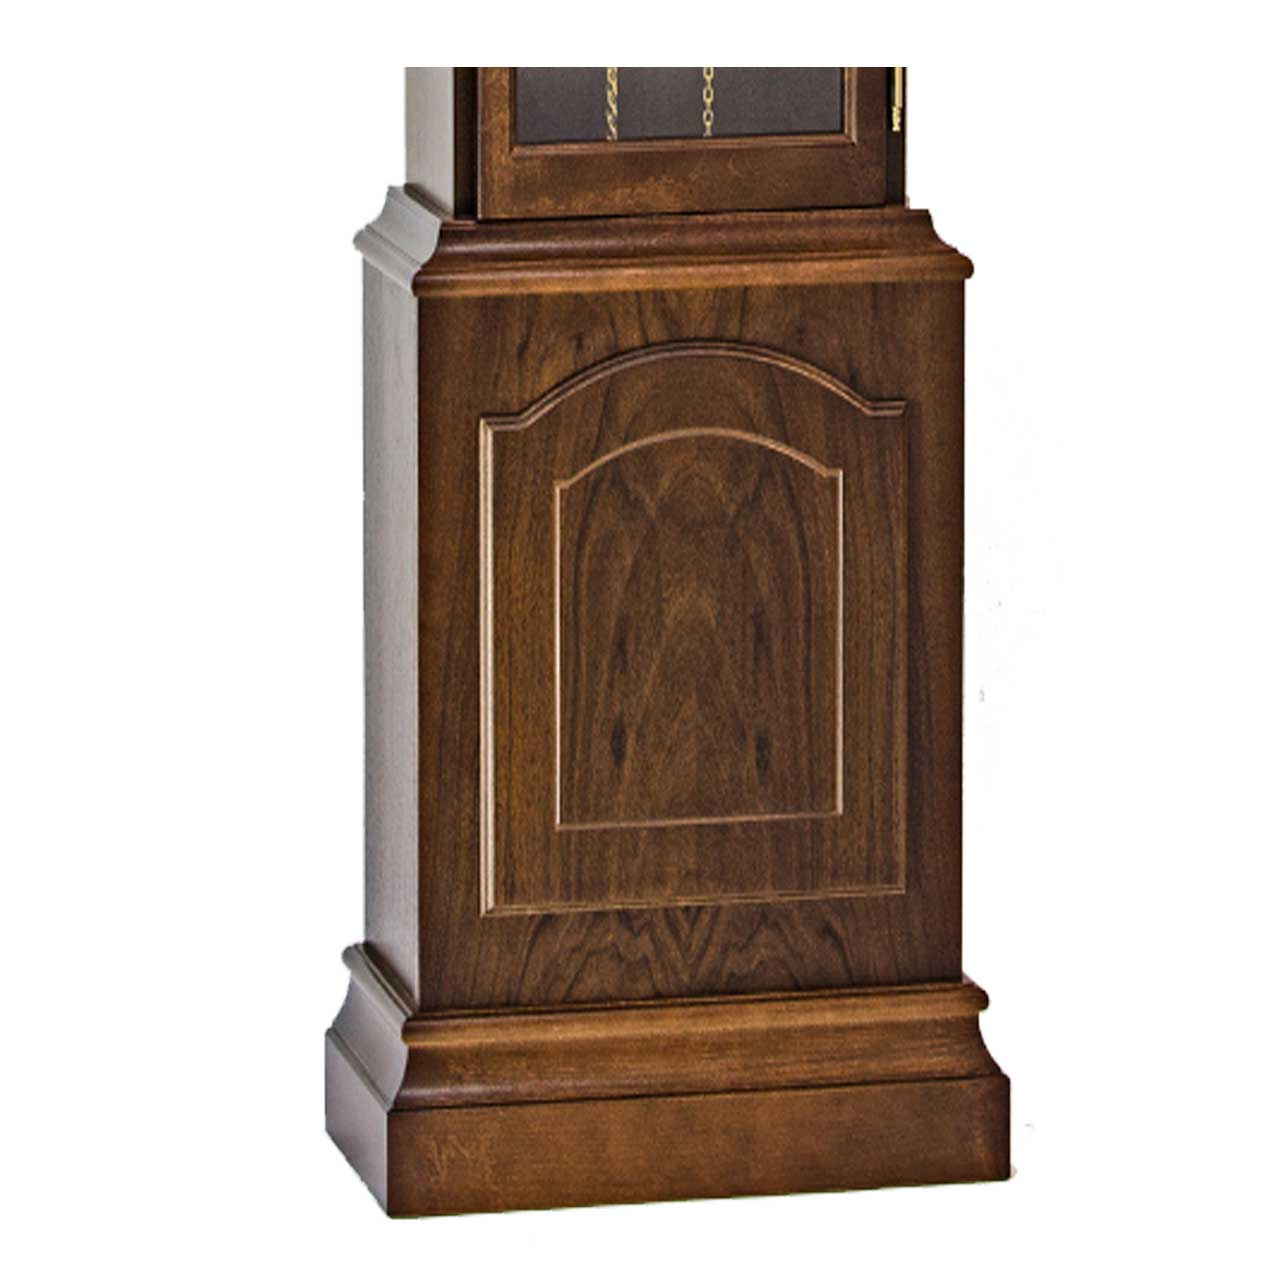 base floors clock glenhaven grandfather walnut billib clocks grandmother shop floor